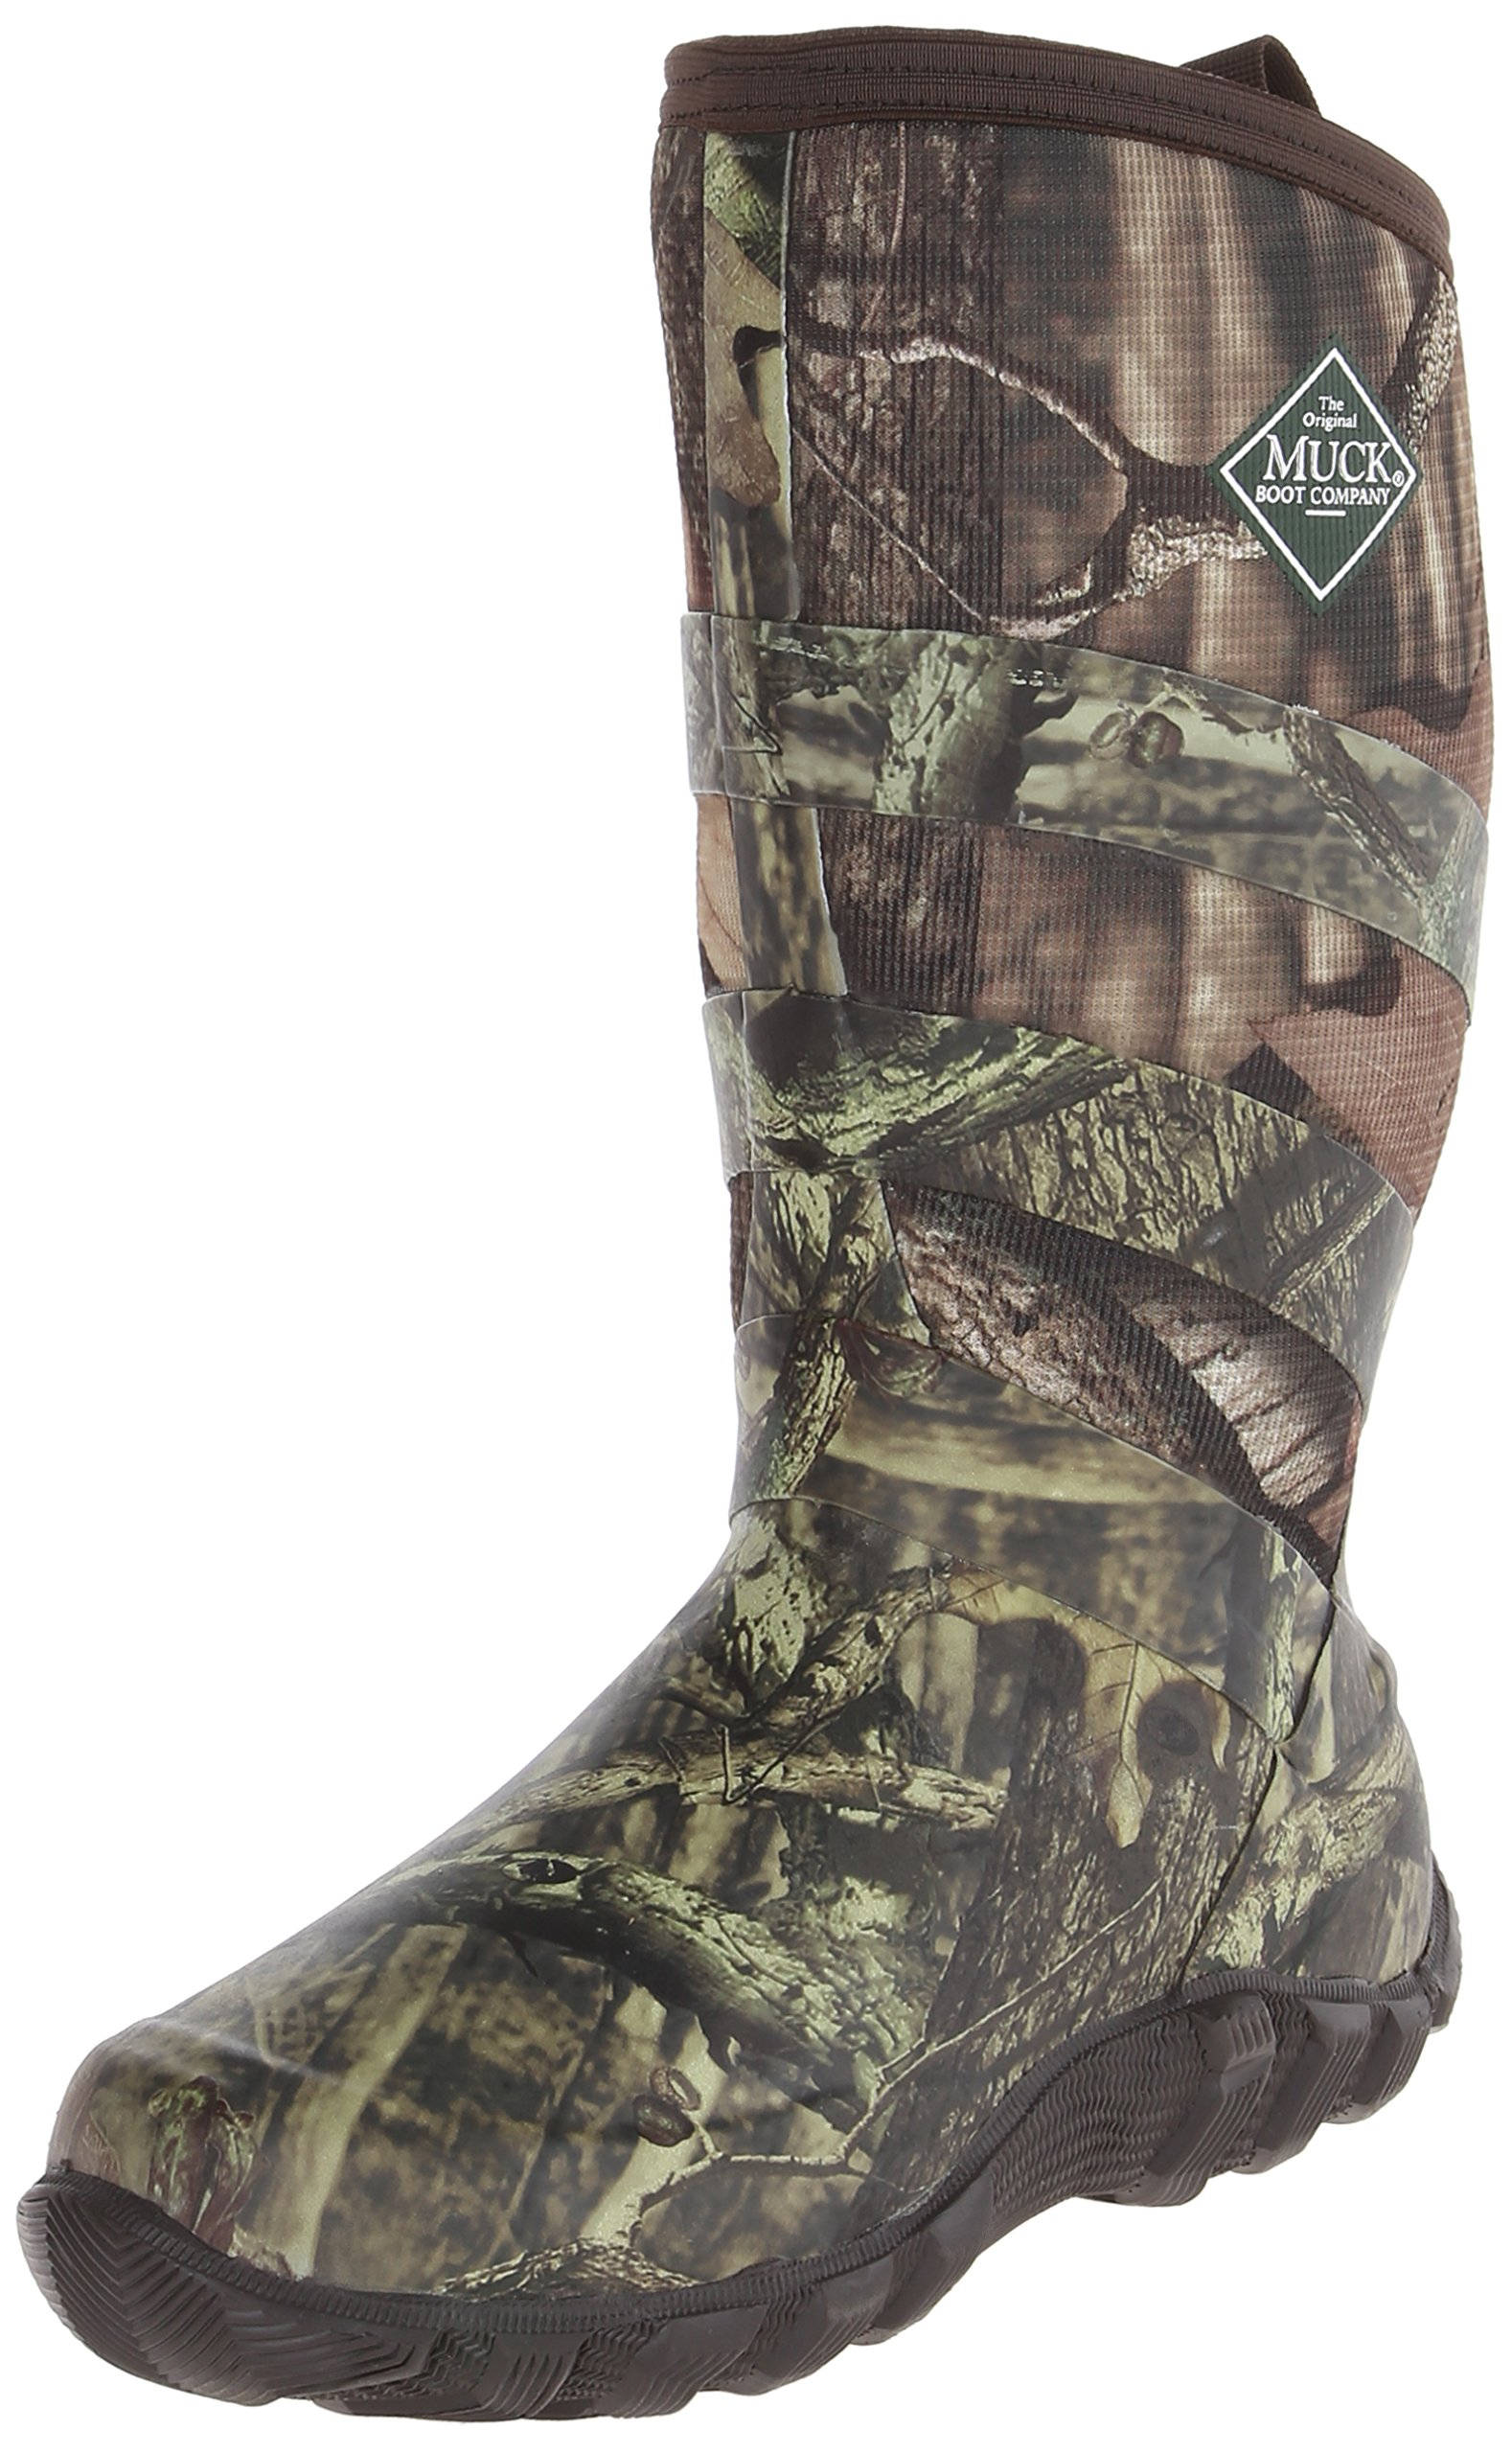 Muck Pursuit Fieldrunner 15'' Rubber Insulated Men's Hunting Boots by Muck Boot